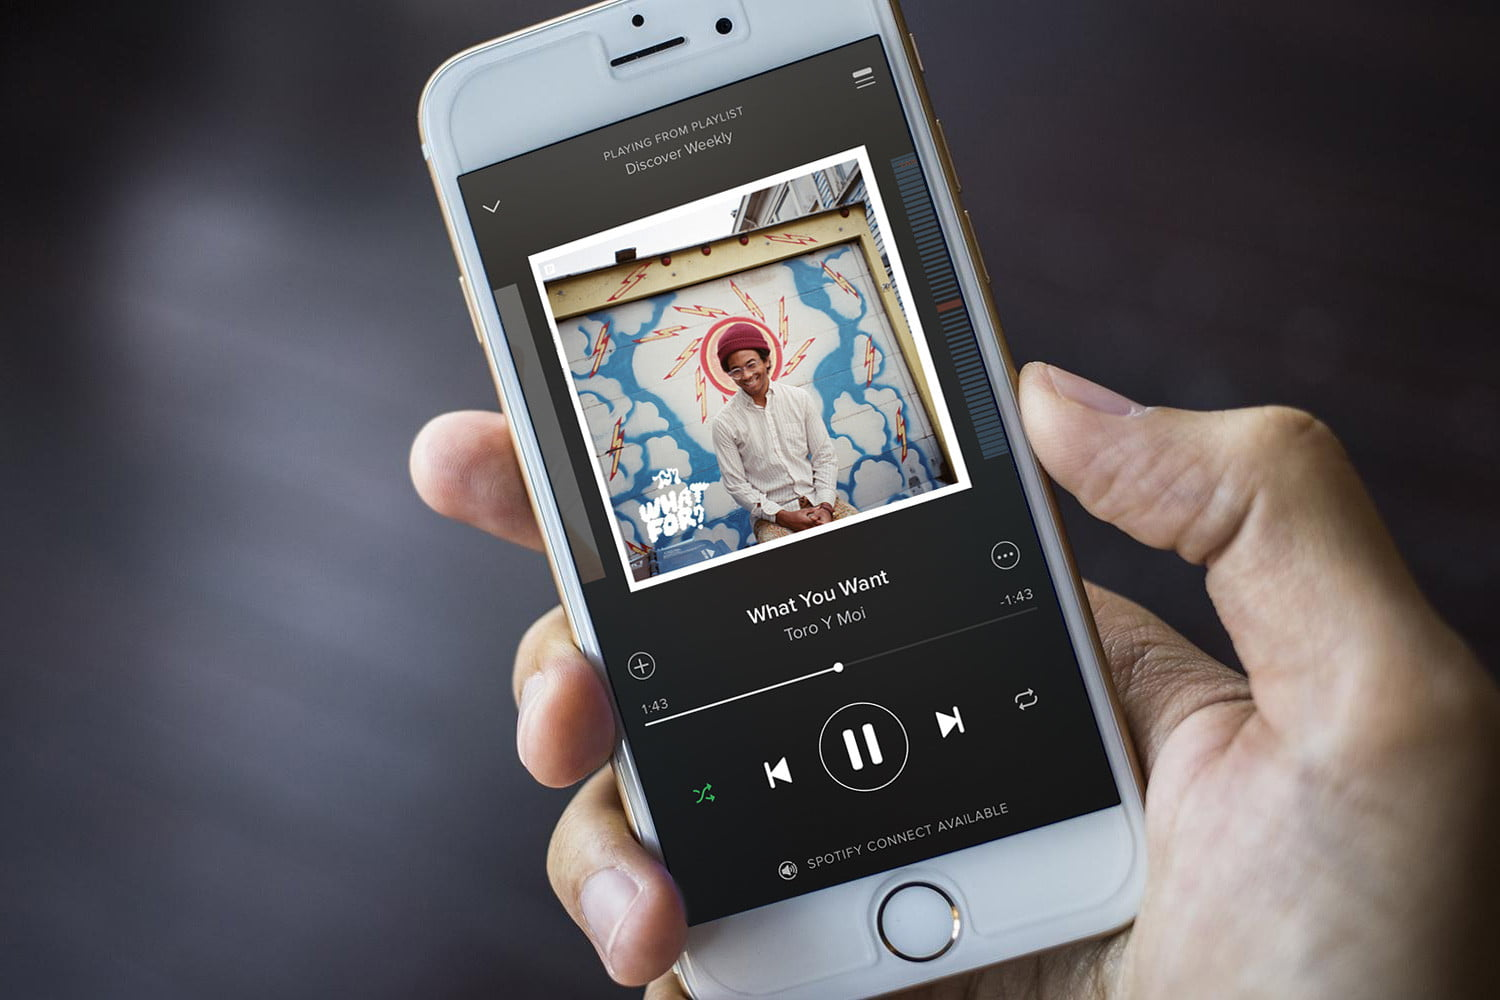 How to download songs from spotify mobile